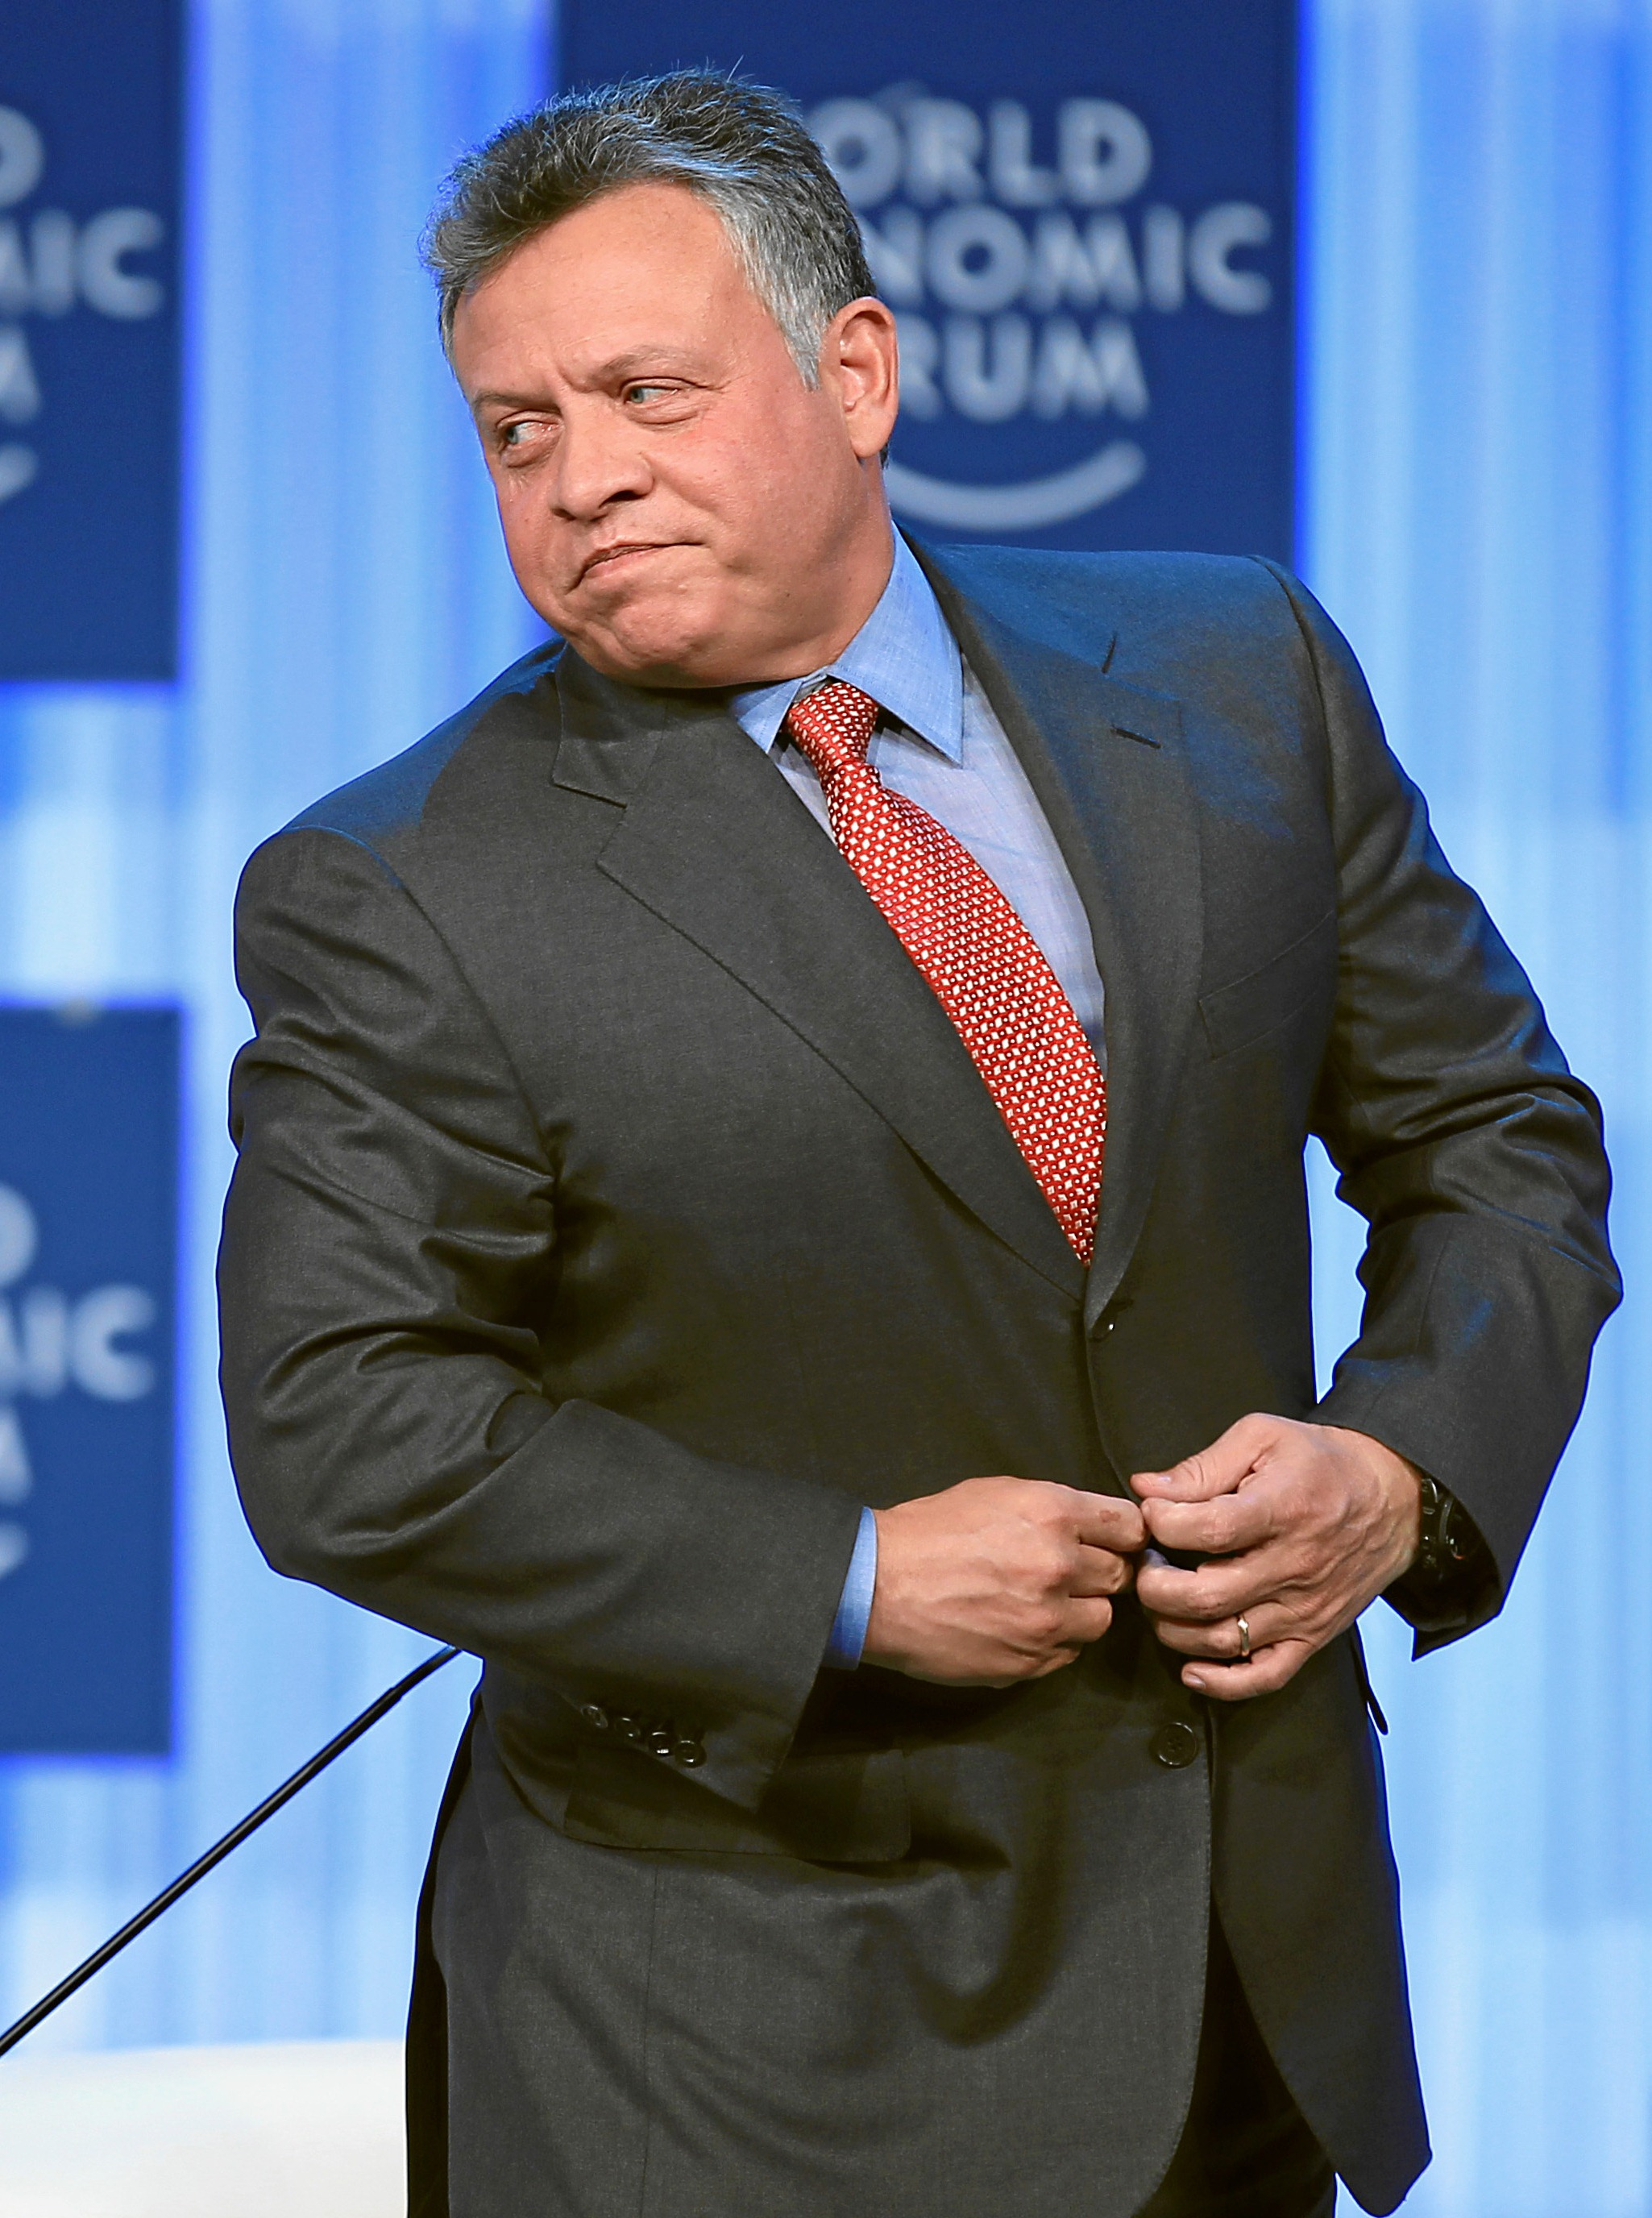 Abdullah II of Jordan - Wikipedia, the free encyclopedia